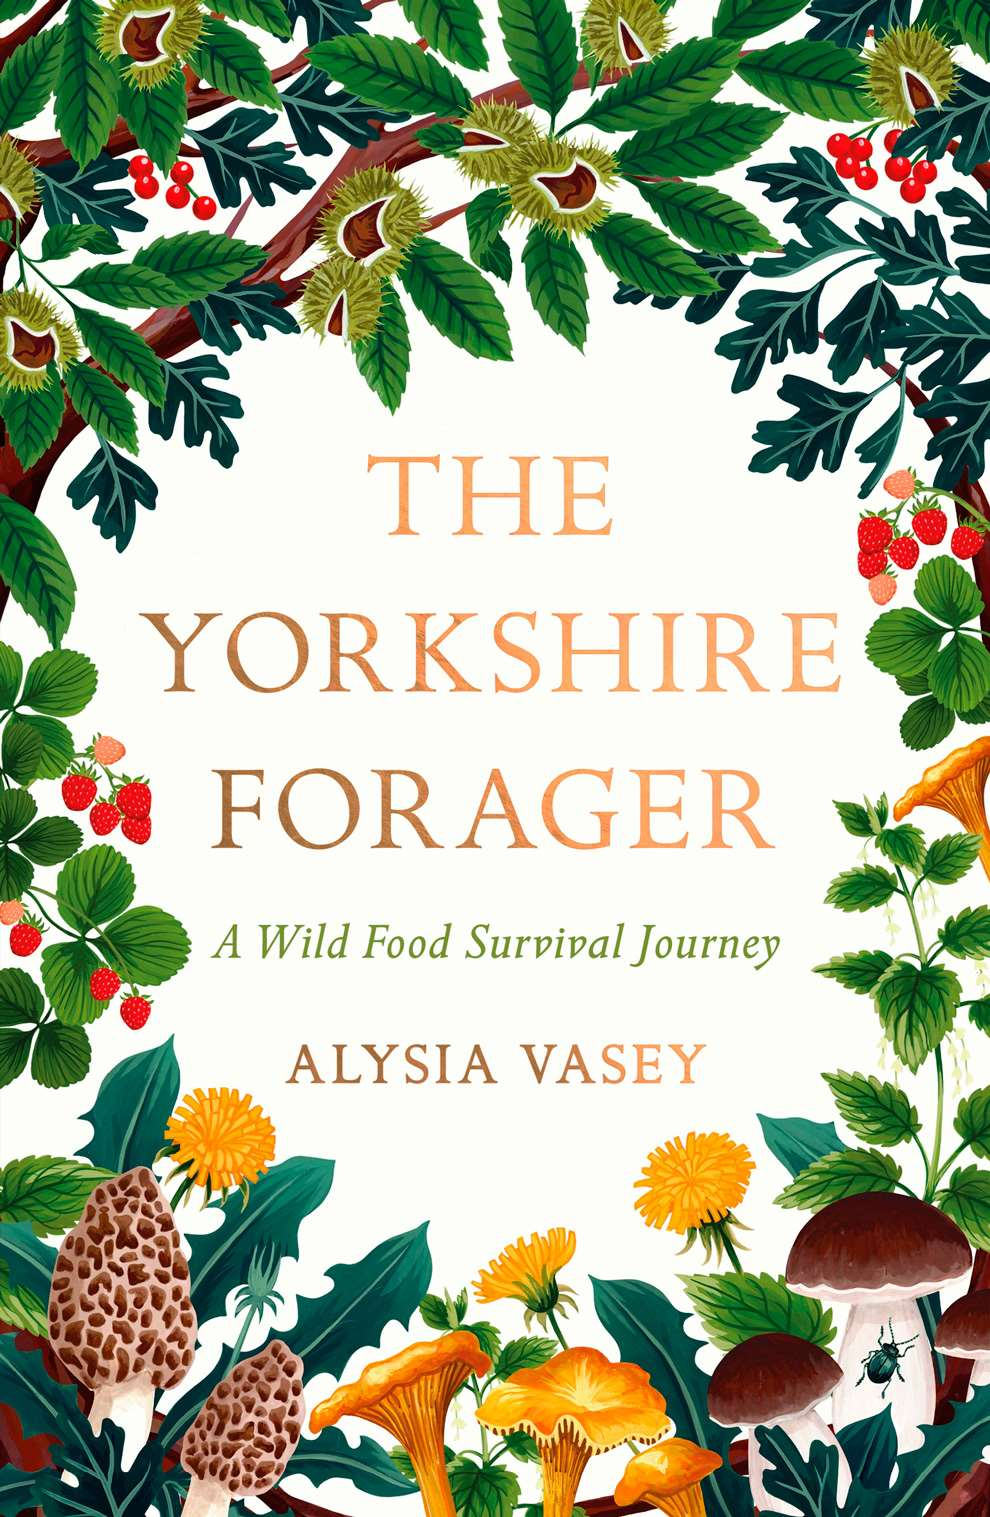 Charlotte Day, Yorkshire Forager Book Cover, with colourful and warm botanical details surrounding the orange text in the centre.